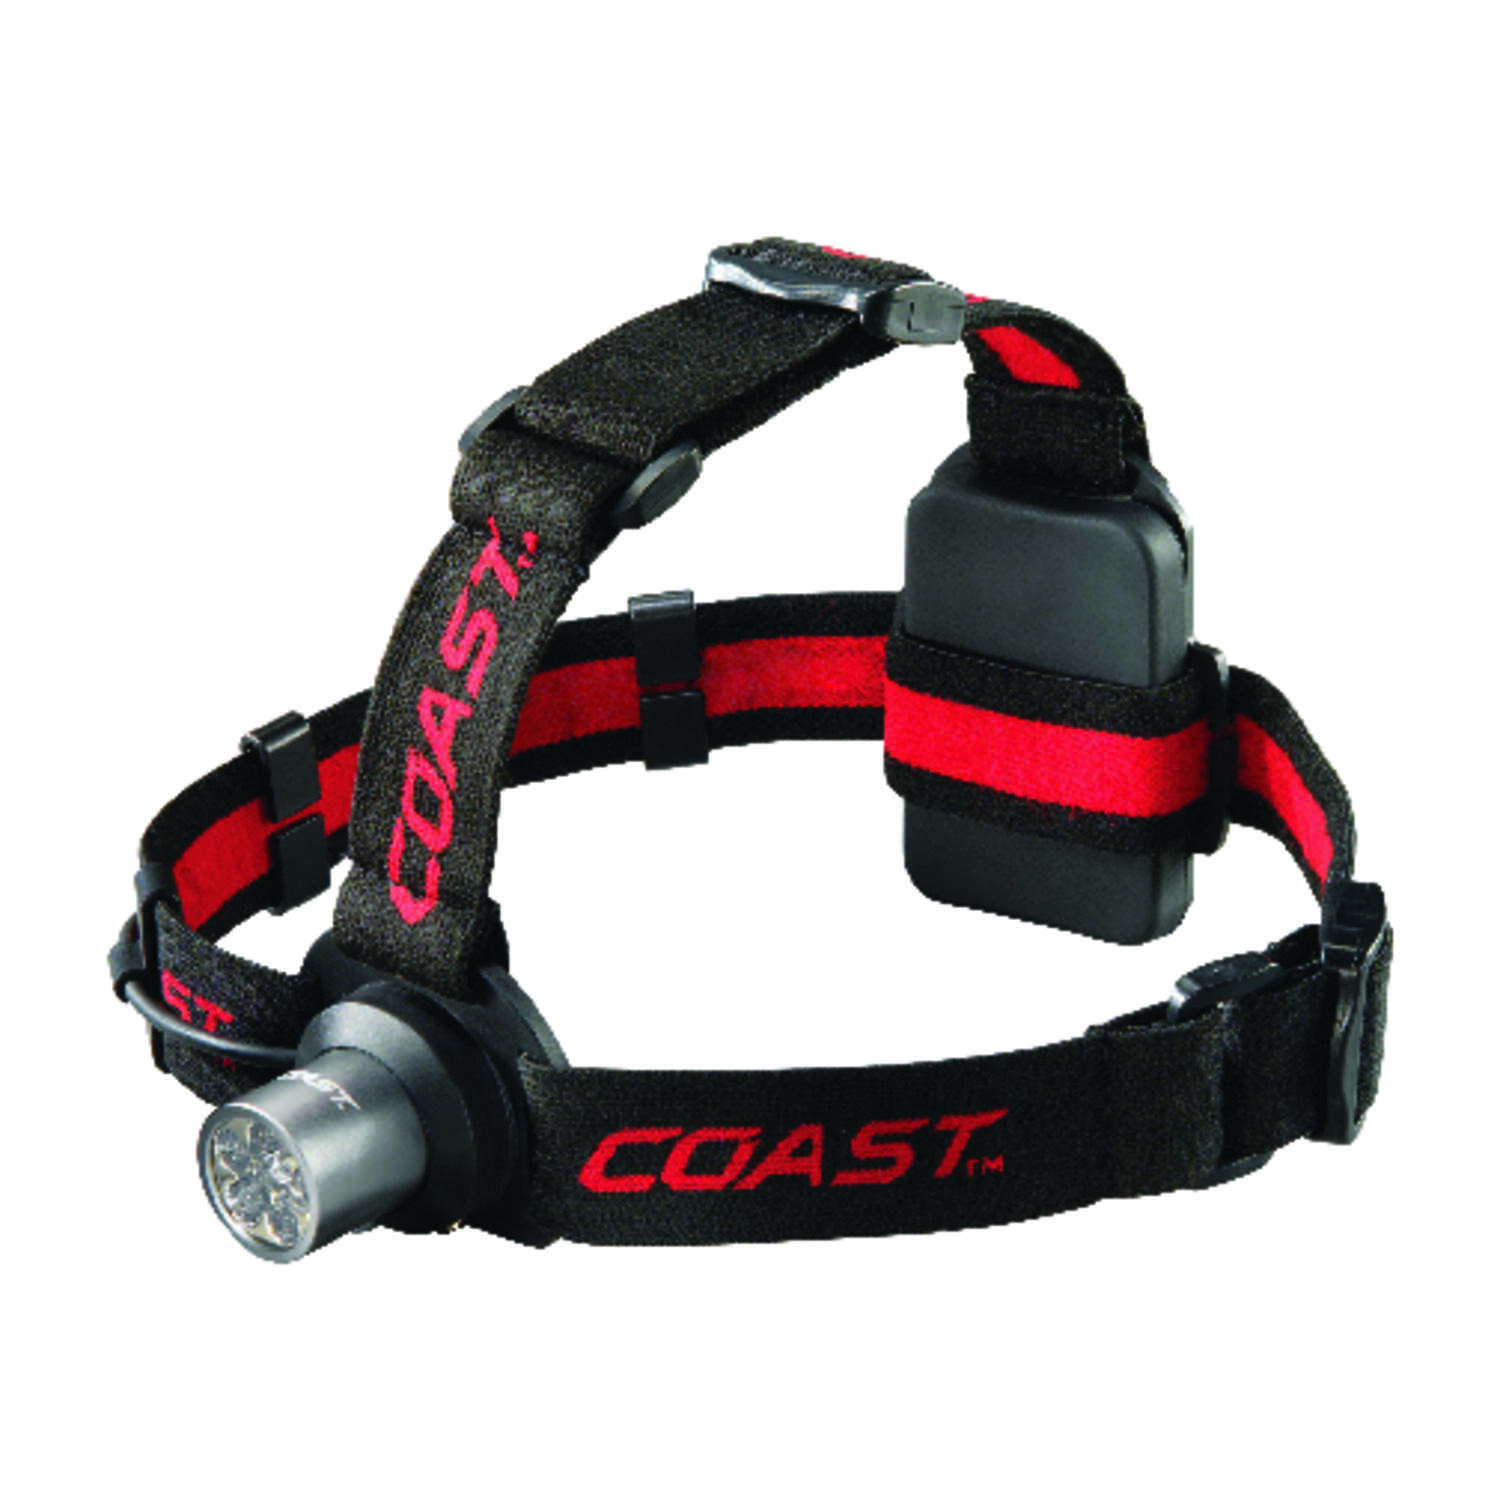 Coast  HL5  175 lumens Black  LED  Head Lamp  AAA Battery